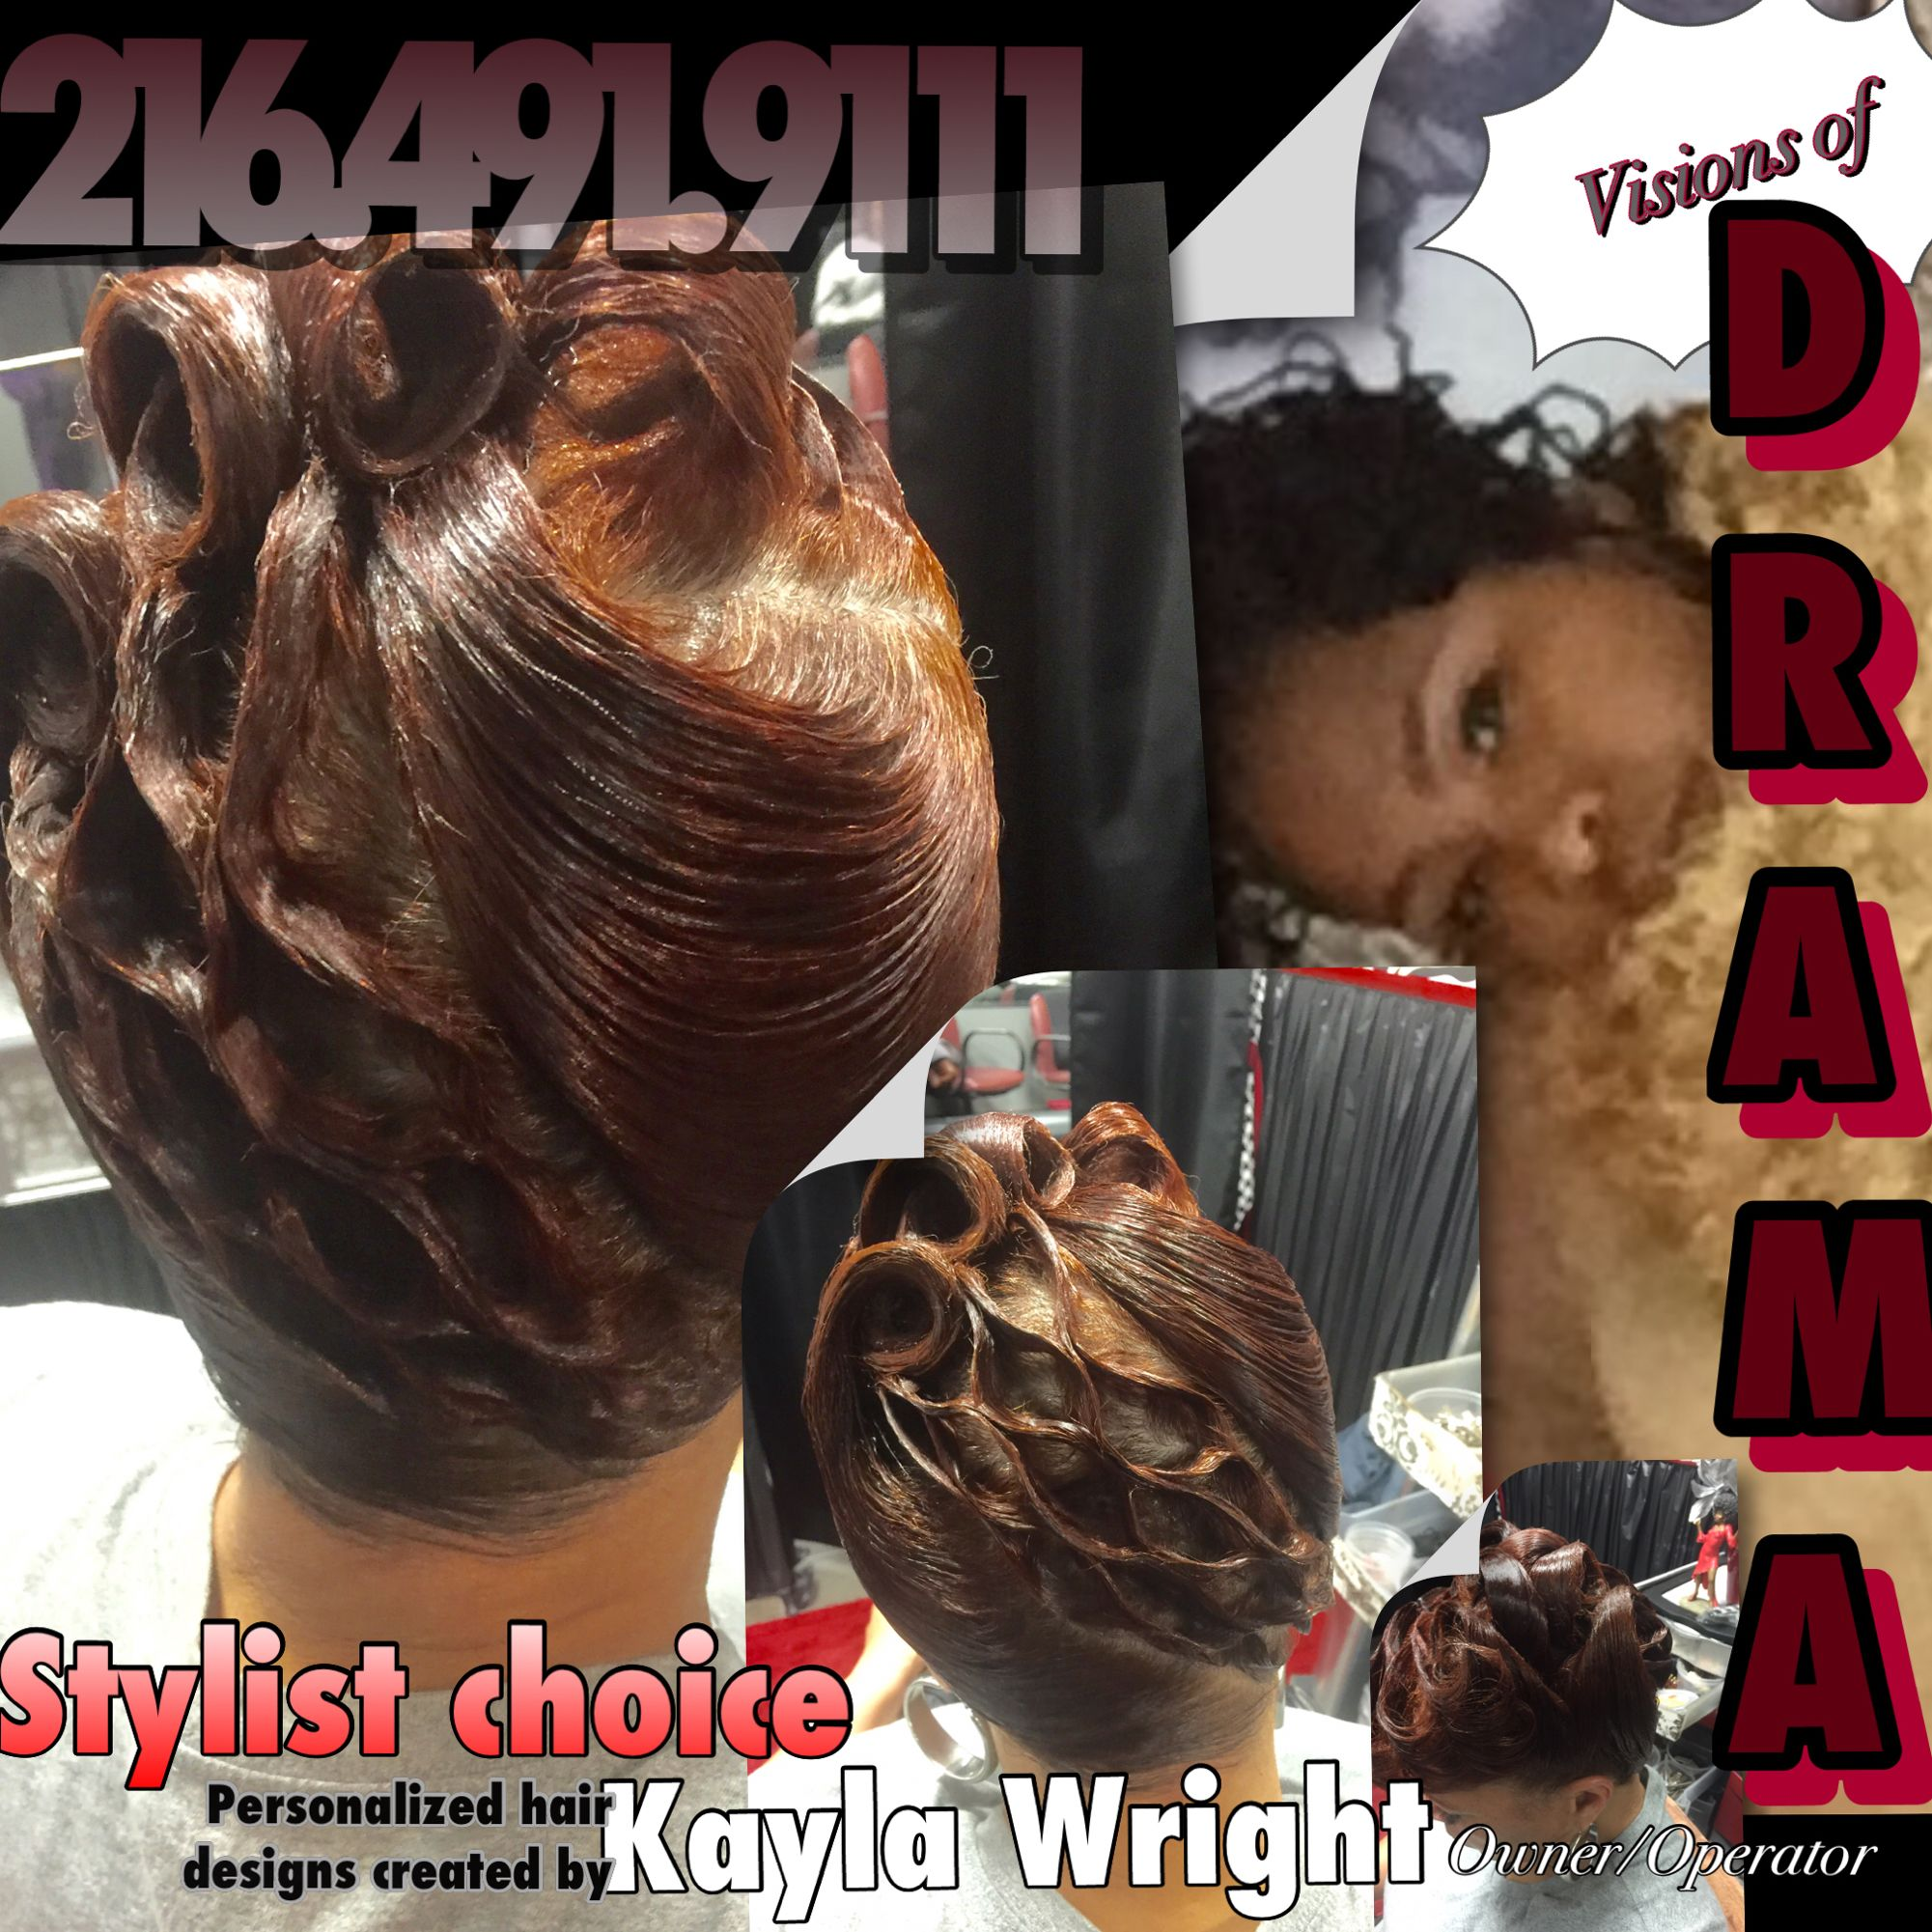 Kayla Wright Visions Of Drama Cleveland Ohio When You Desire An Exclusive Stylist Why Pay The Difference When You Can Hair Stylist Hair Designs Stylists